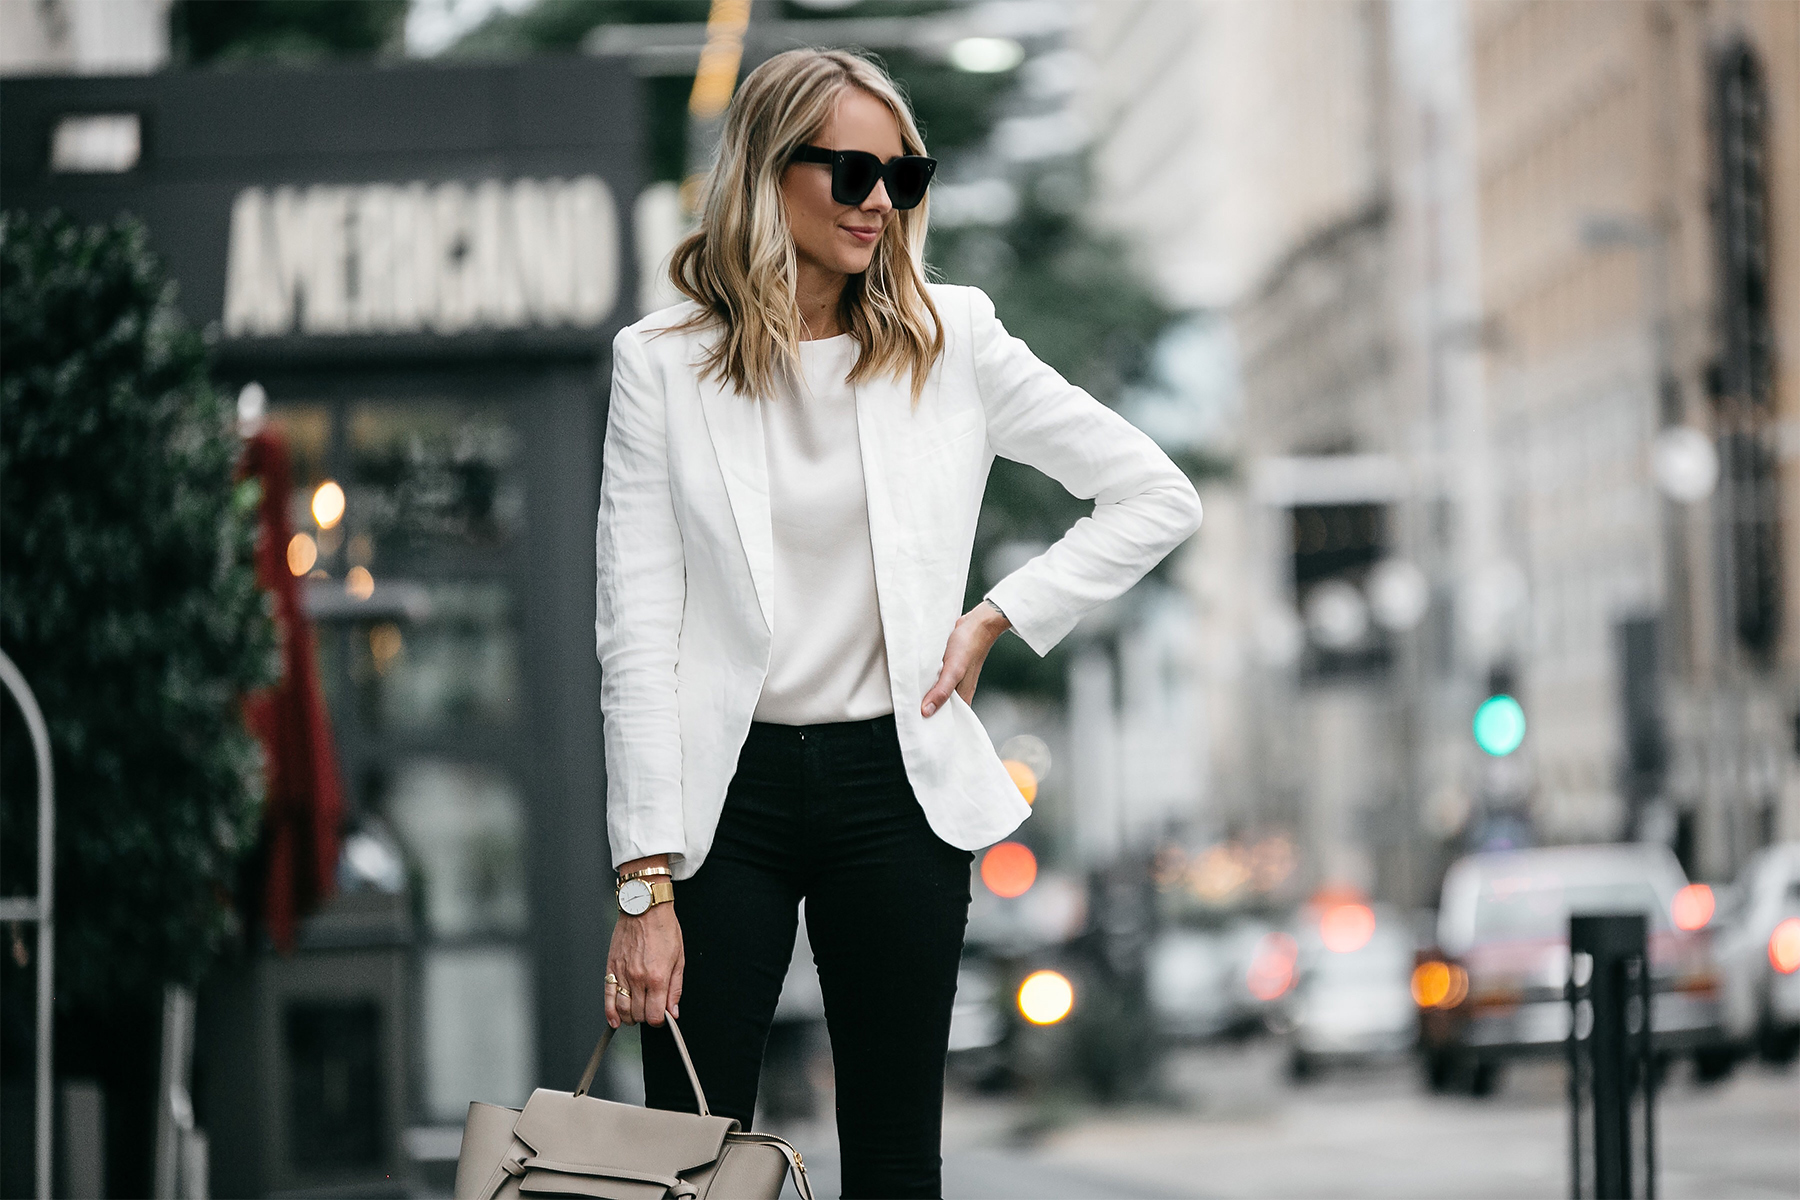 Blonde Woman Wearing Stitch Fix Outfit Joie White Blazer J Brand Black Skinny Jeans Fashion Jackson Dallas Blogger Fashion Blogger Street Style